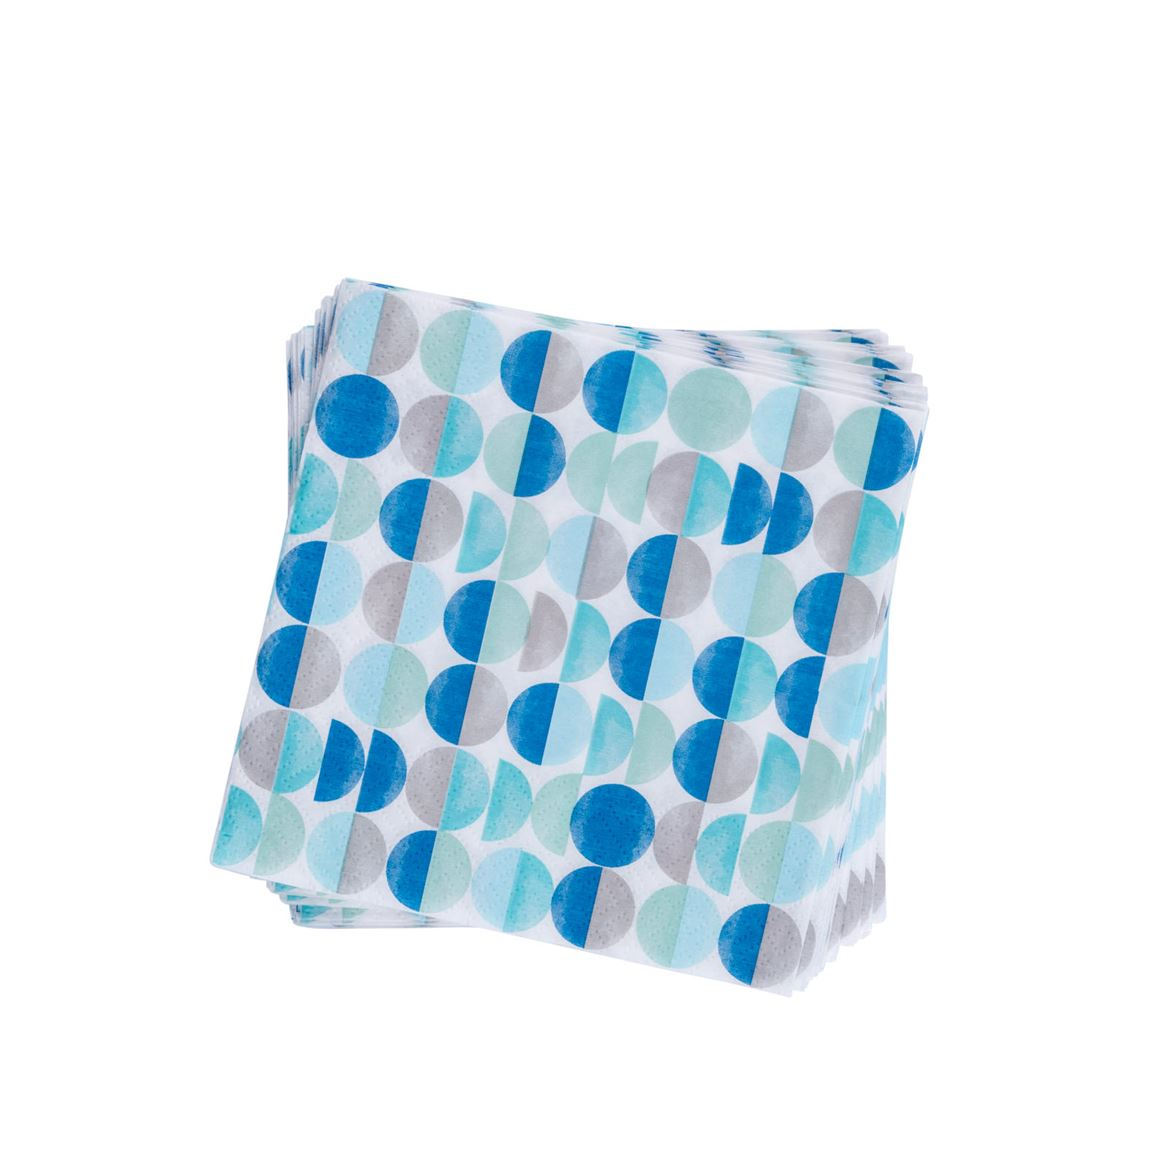 CIRCLES AQUA Set de 20 serviettes bleu Larg. 33 x Long. 33 cm_circles-aqua-set-de-20-serviettes-bleu-larg--33-x-long--33-cm